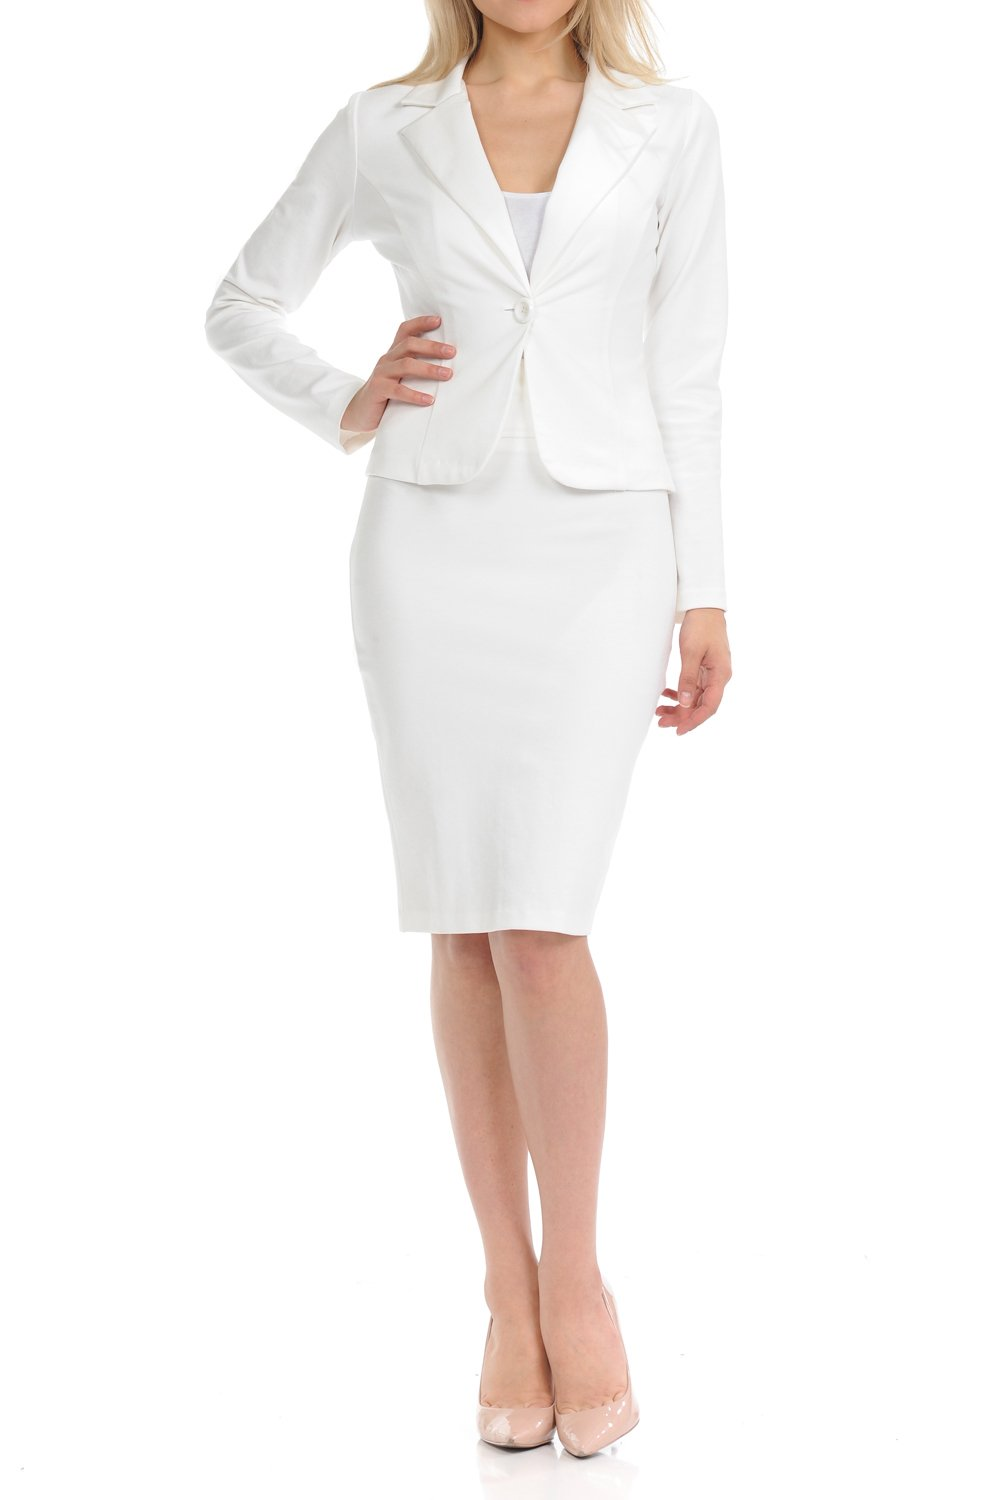 Sweethabit Womens Wear to Work Solid Skirt Suit Set (2X Plus, 3127N-3087N_White)